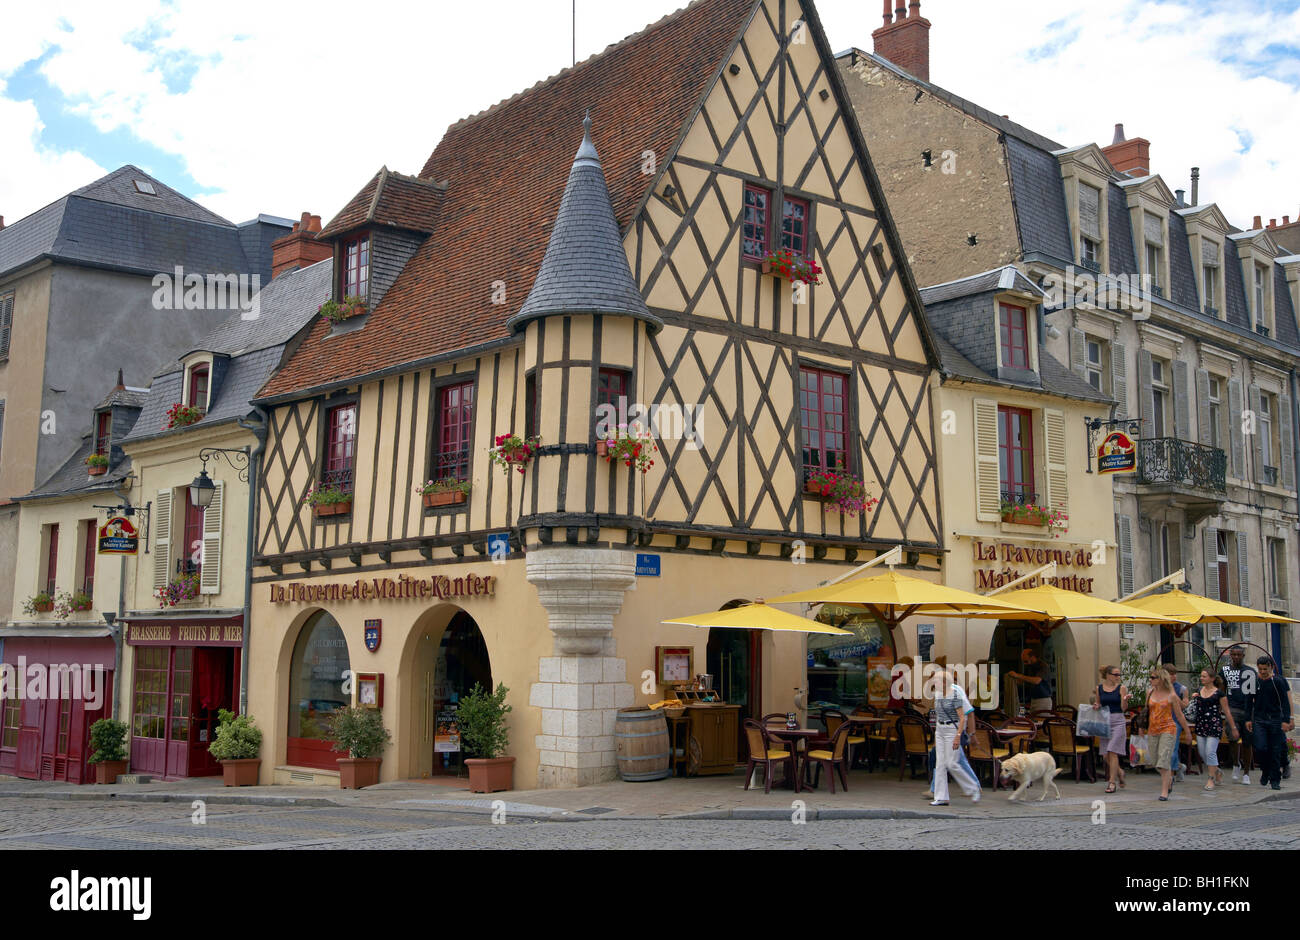 Paris Bourges Bus Old City Of Bourges With Restaurants The Way Of St James